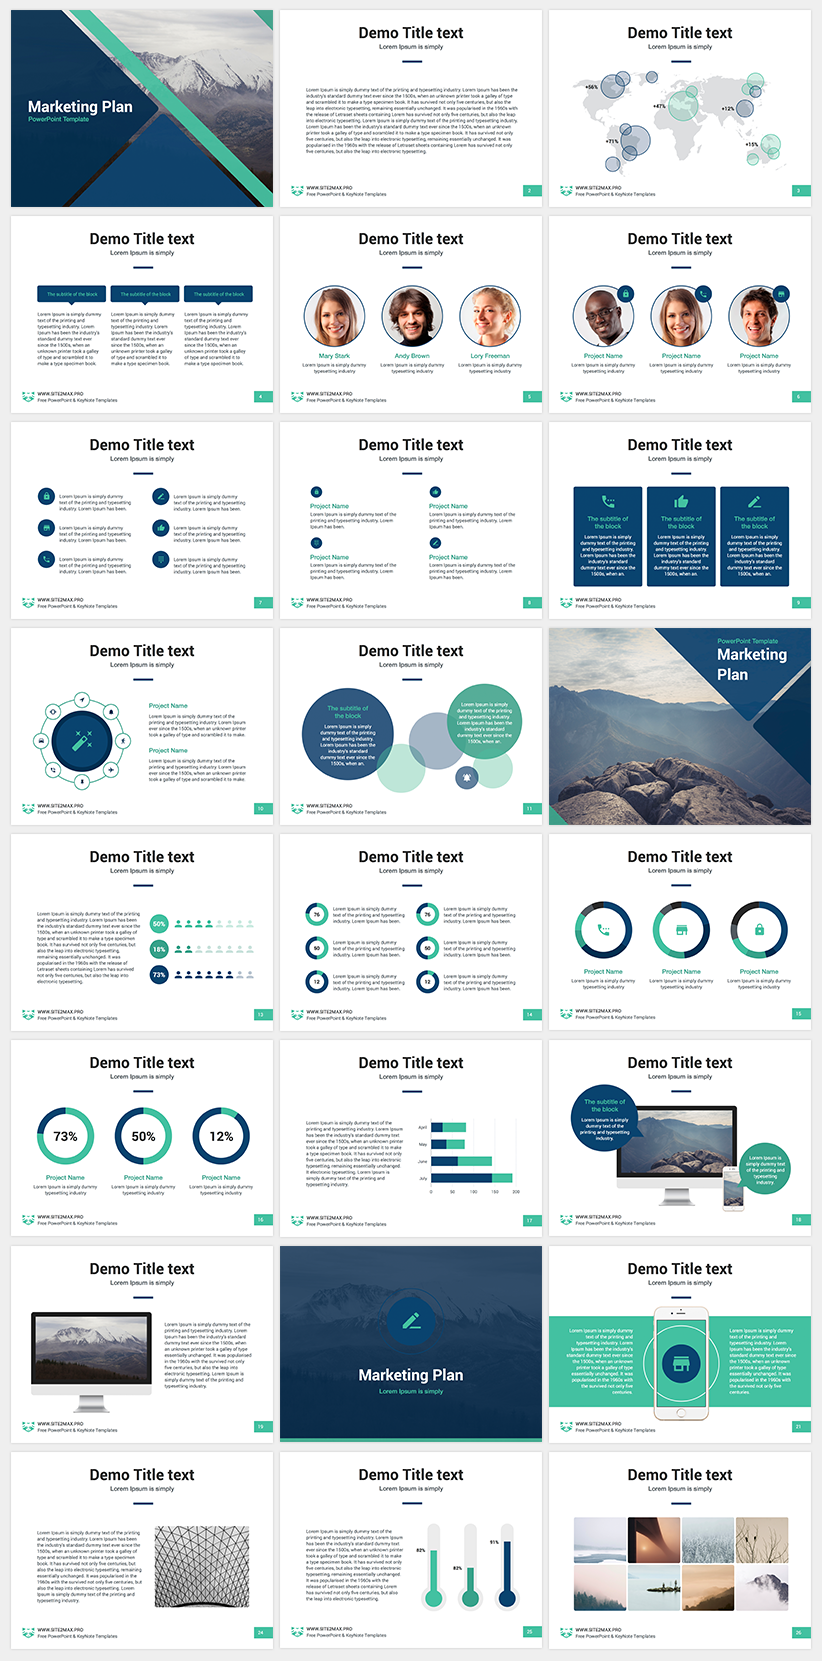 Marketing plan free powerpoint template present pinterest you can download marketing plan free powerpoint template for free and without registration by using the link below use a powerpoint presentation template toneelgroepblik Choice Image